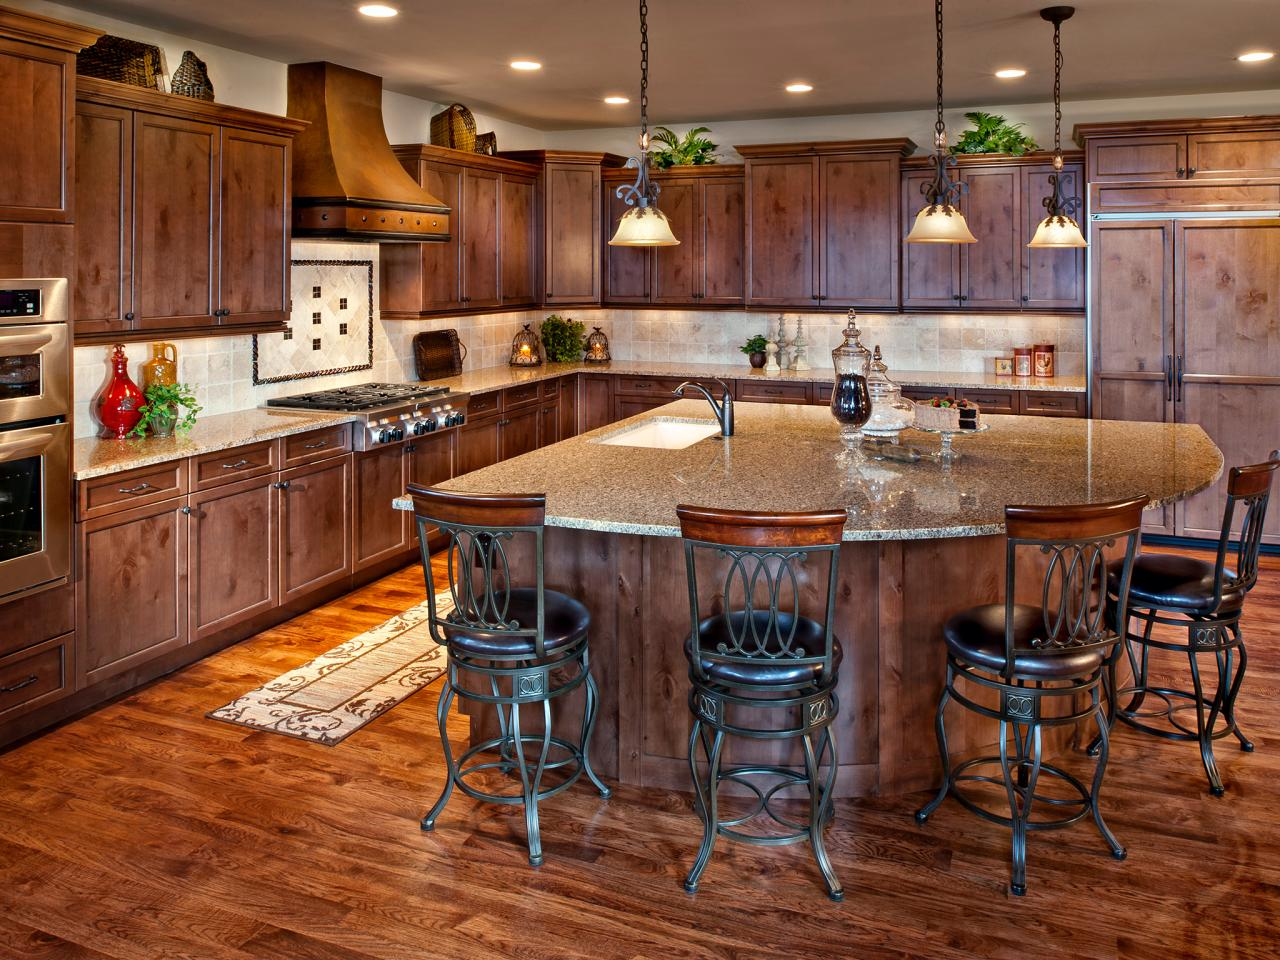 Italian kitchen design pictures ideas tips from hgtv for Beautiful kitchen remodels